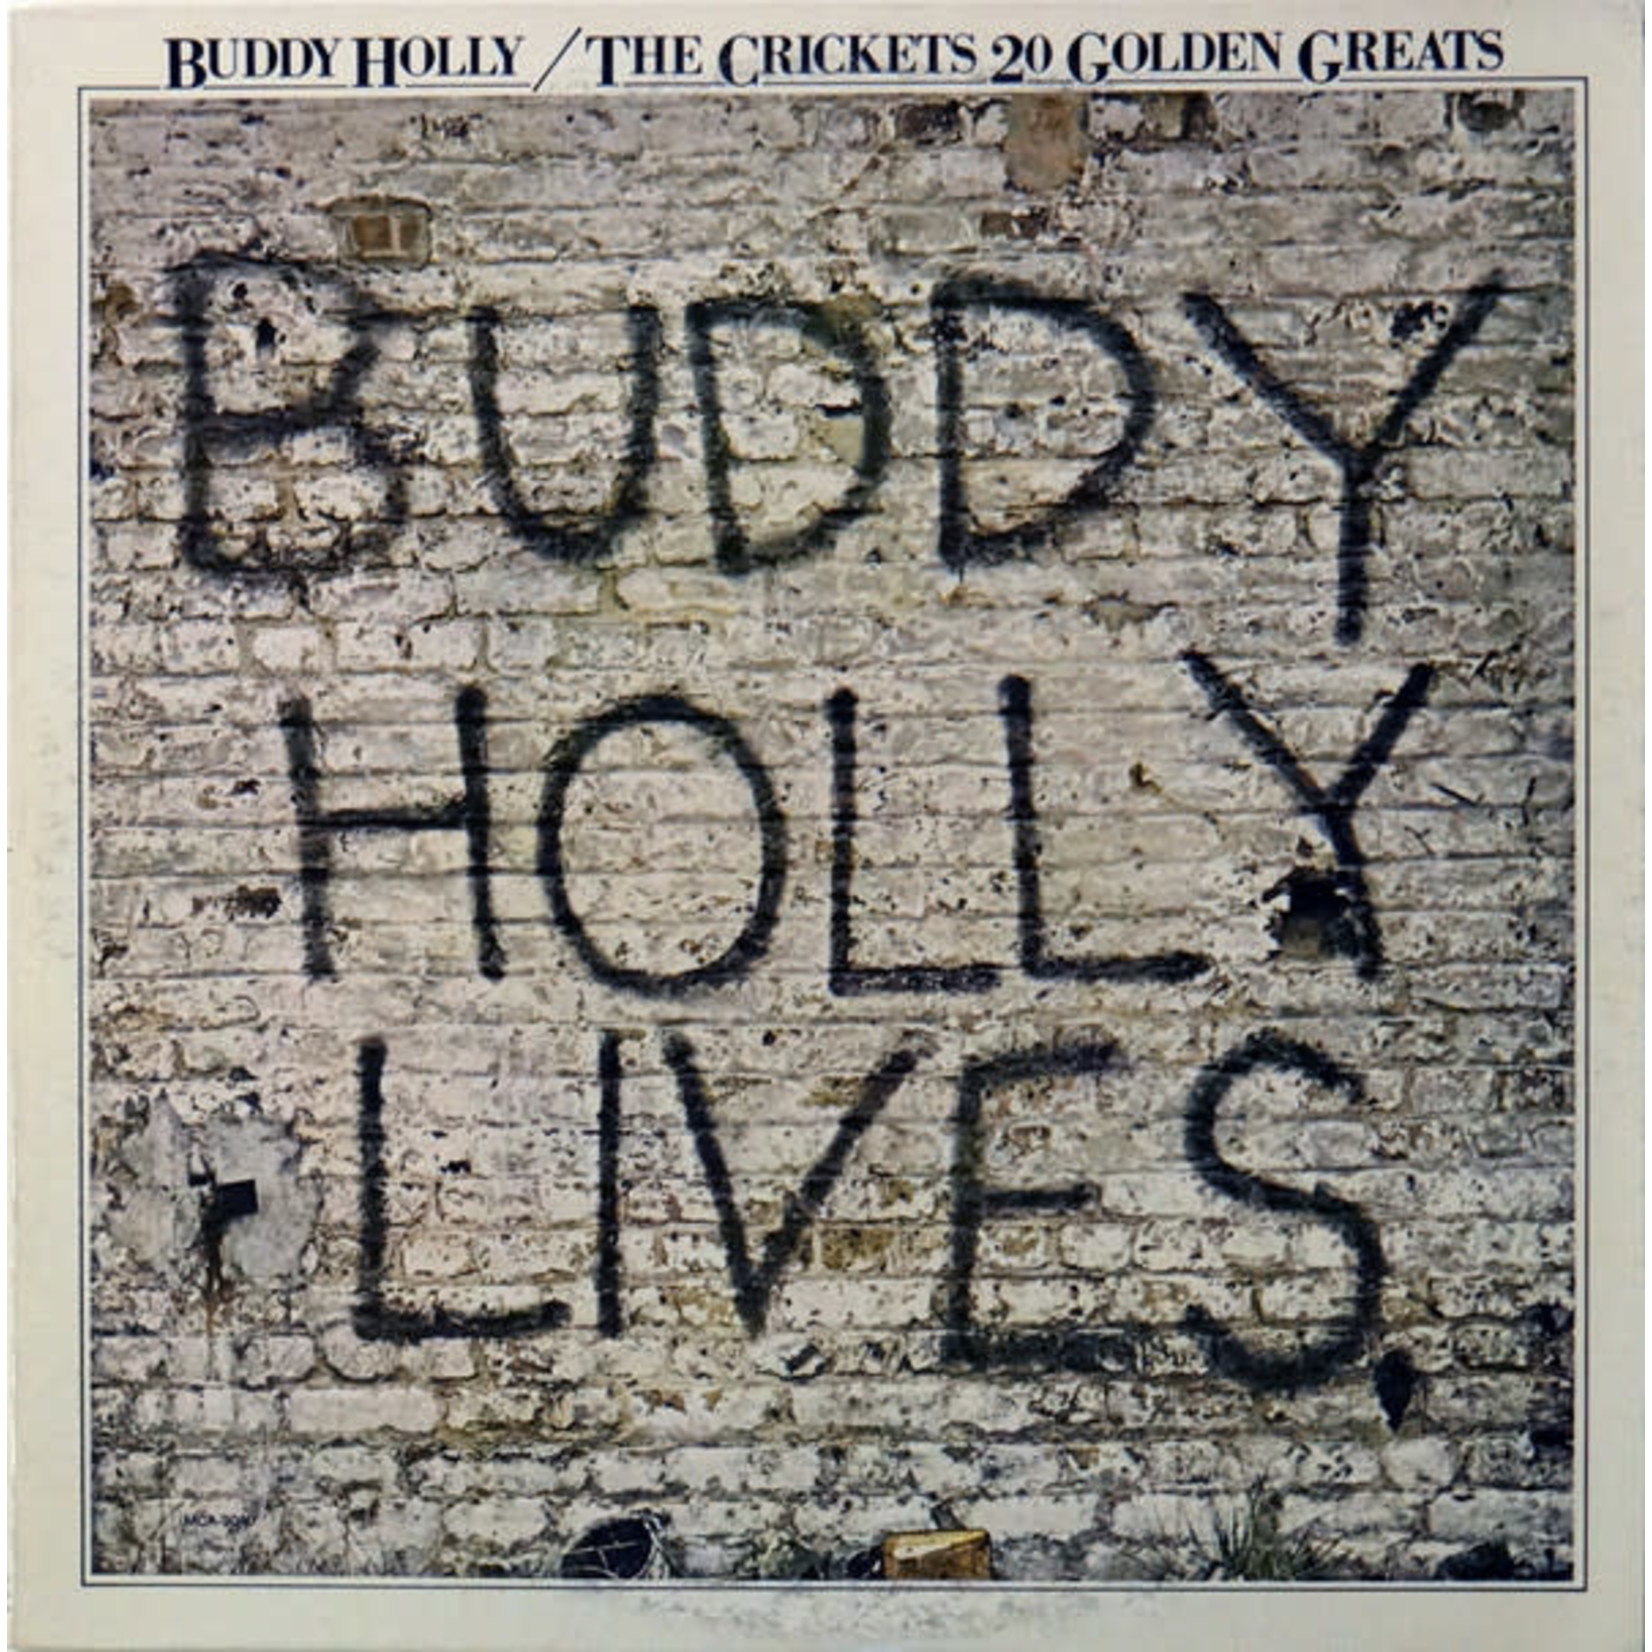 [Vintage] Holly, Buddy: The Crickets 20 Golden Greats